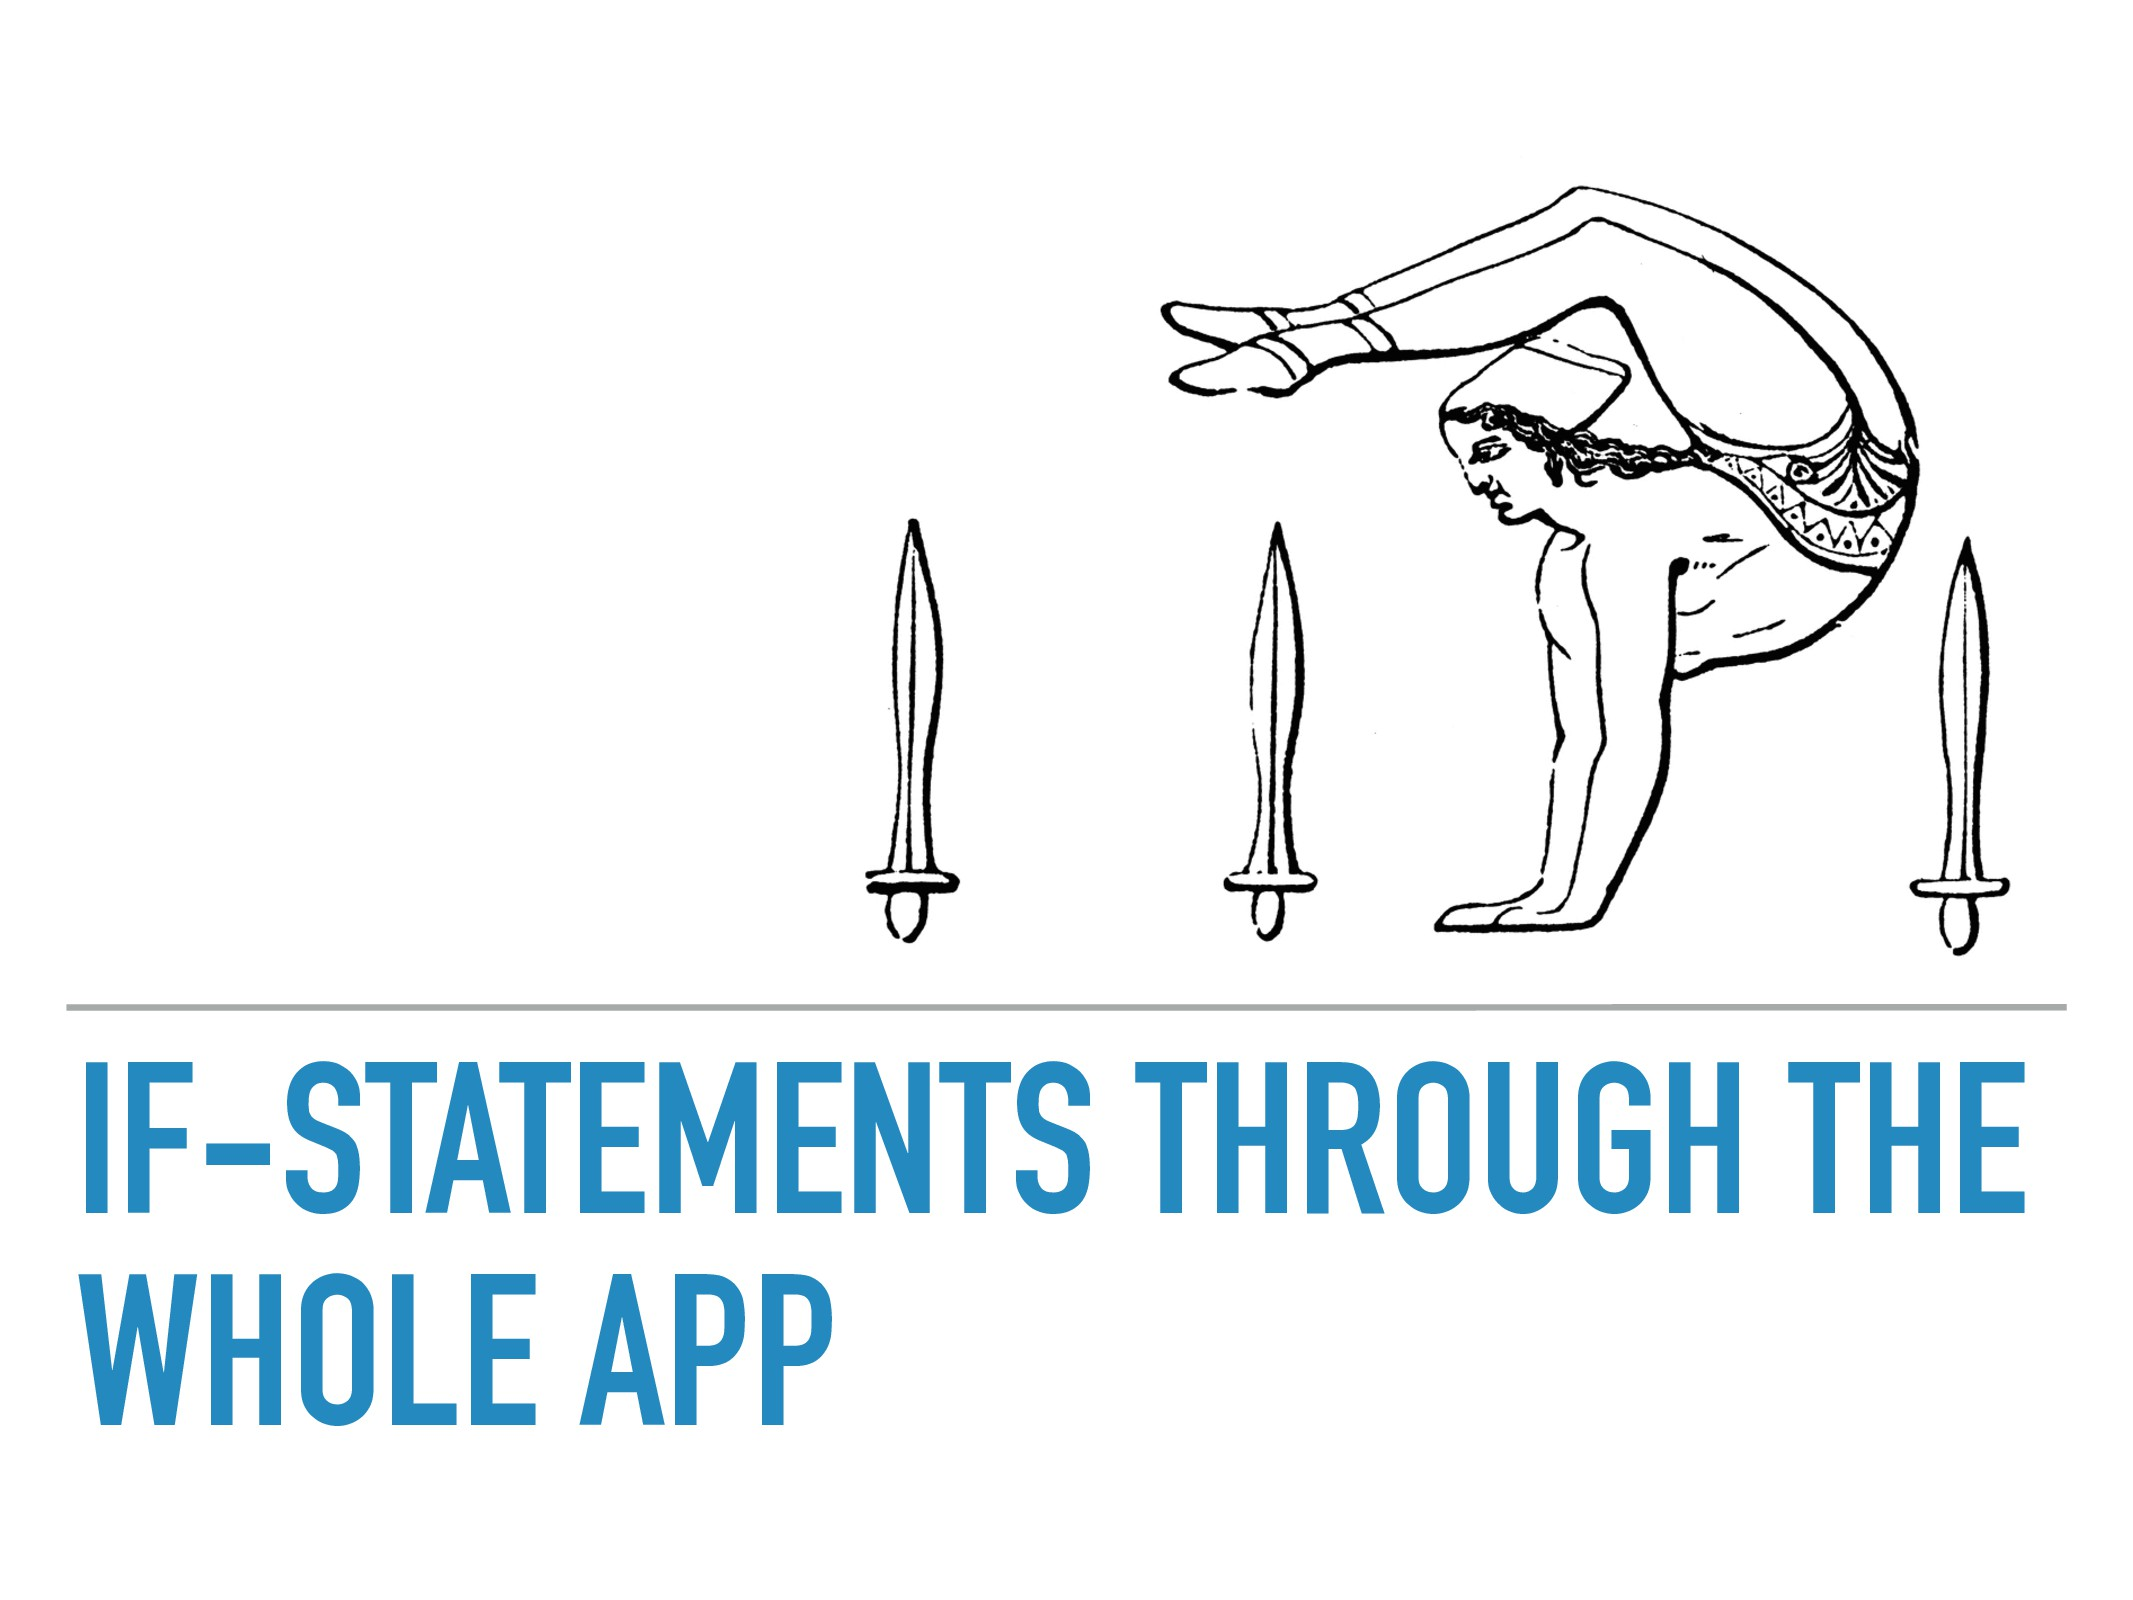 IF-STATEMENTS THROUGH THE WHOLE APP